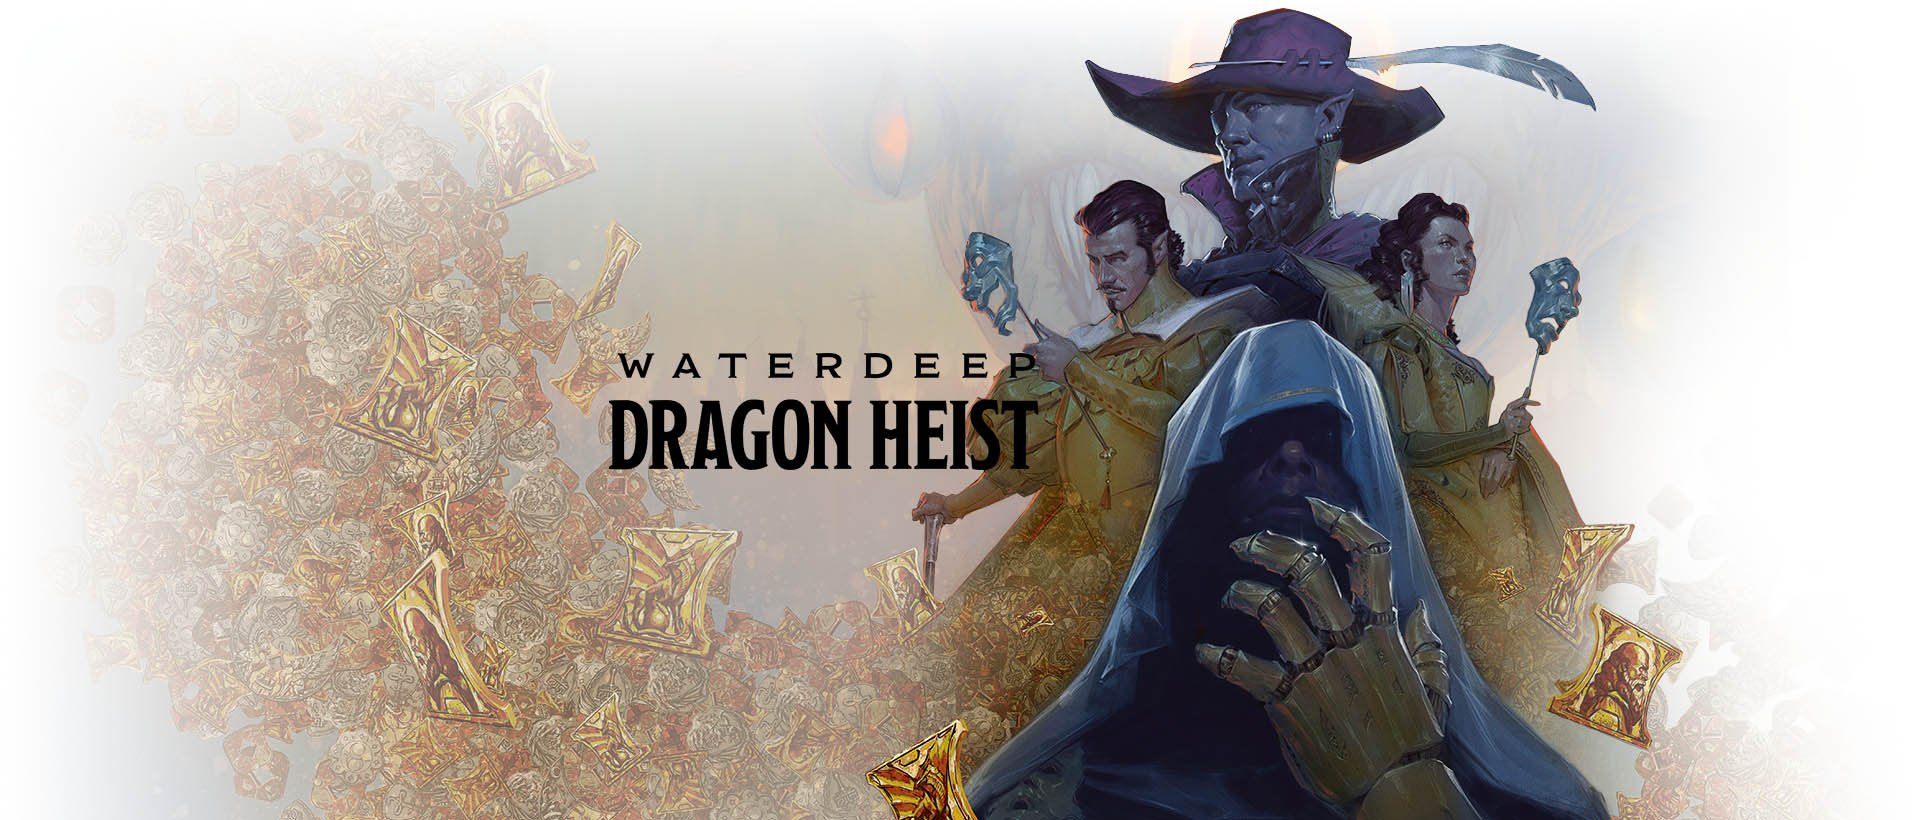 D&D: Waterdeep Dragon Heist's Monsters, Magic Items, And